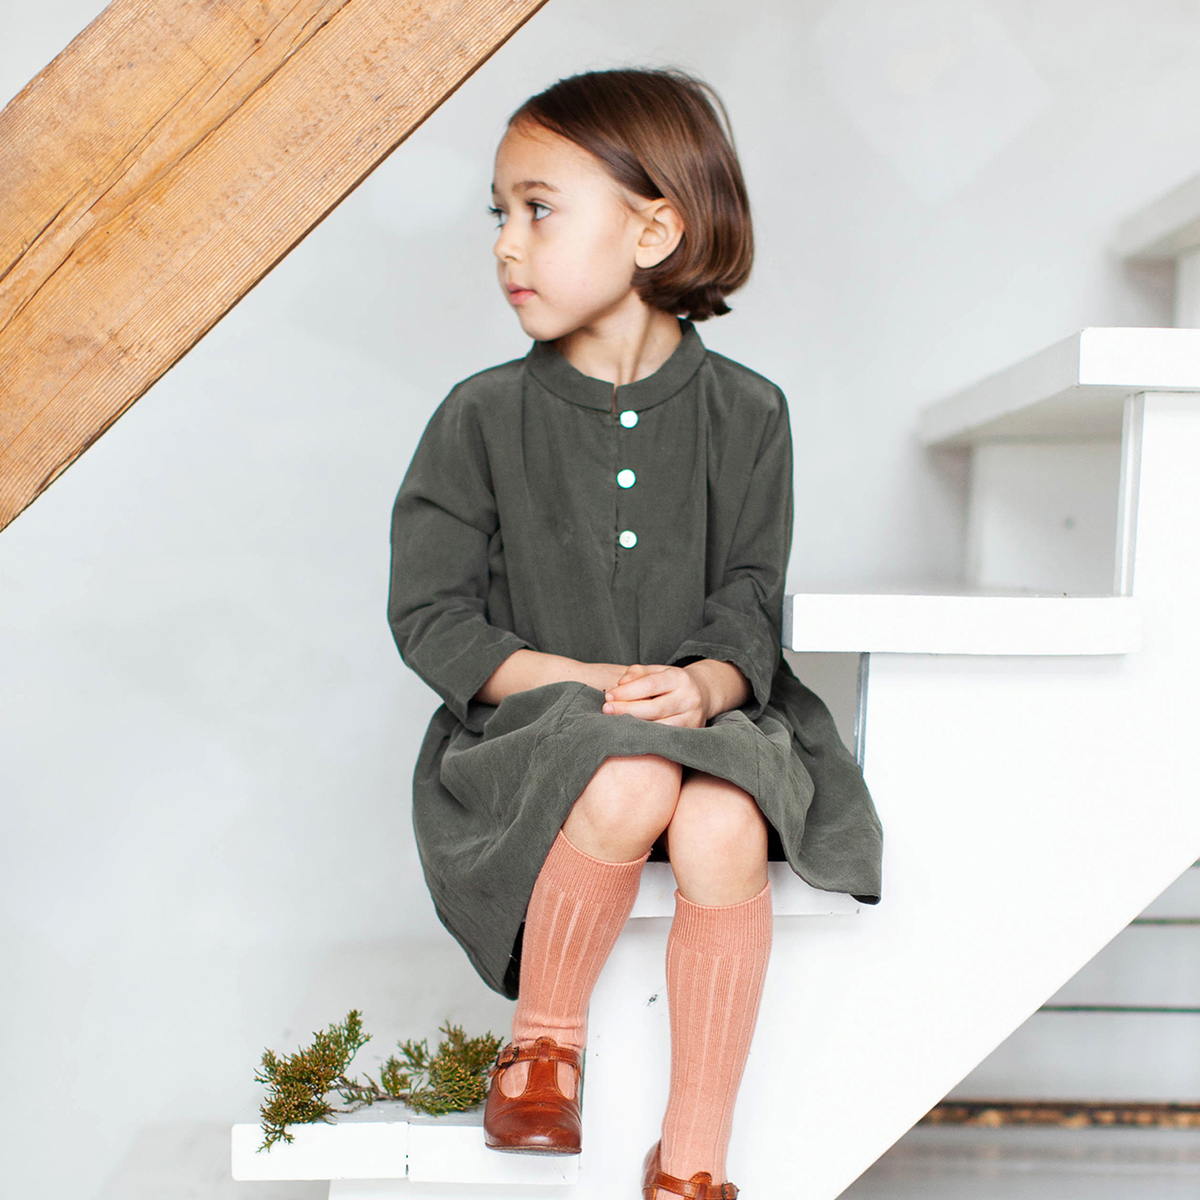 Soor Ploom Gilda Dress in Peat Green on Girl